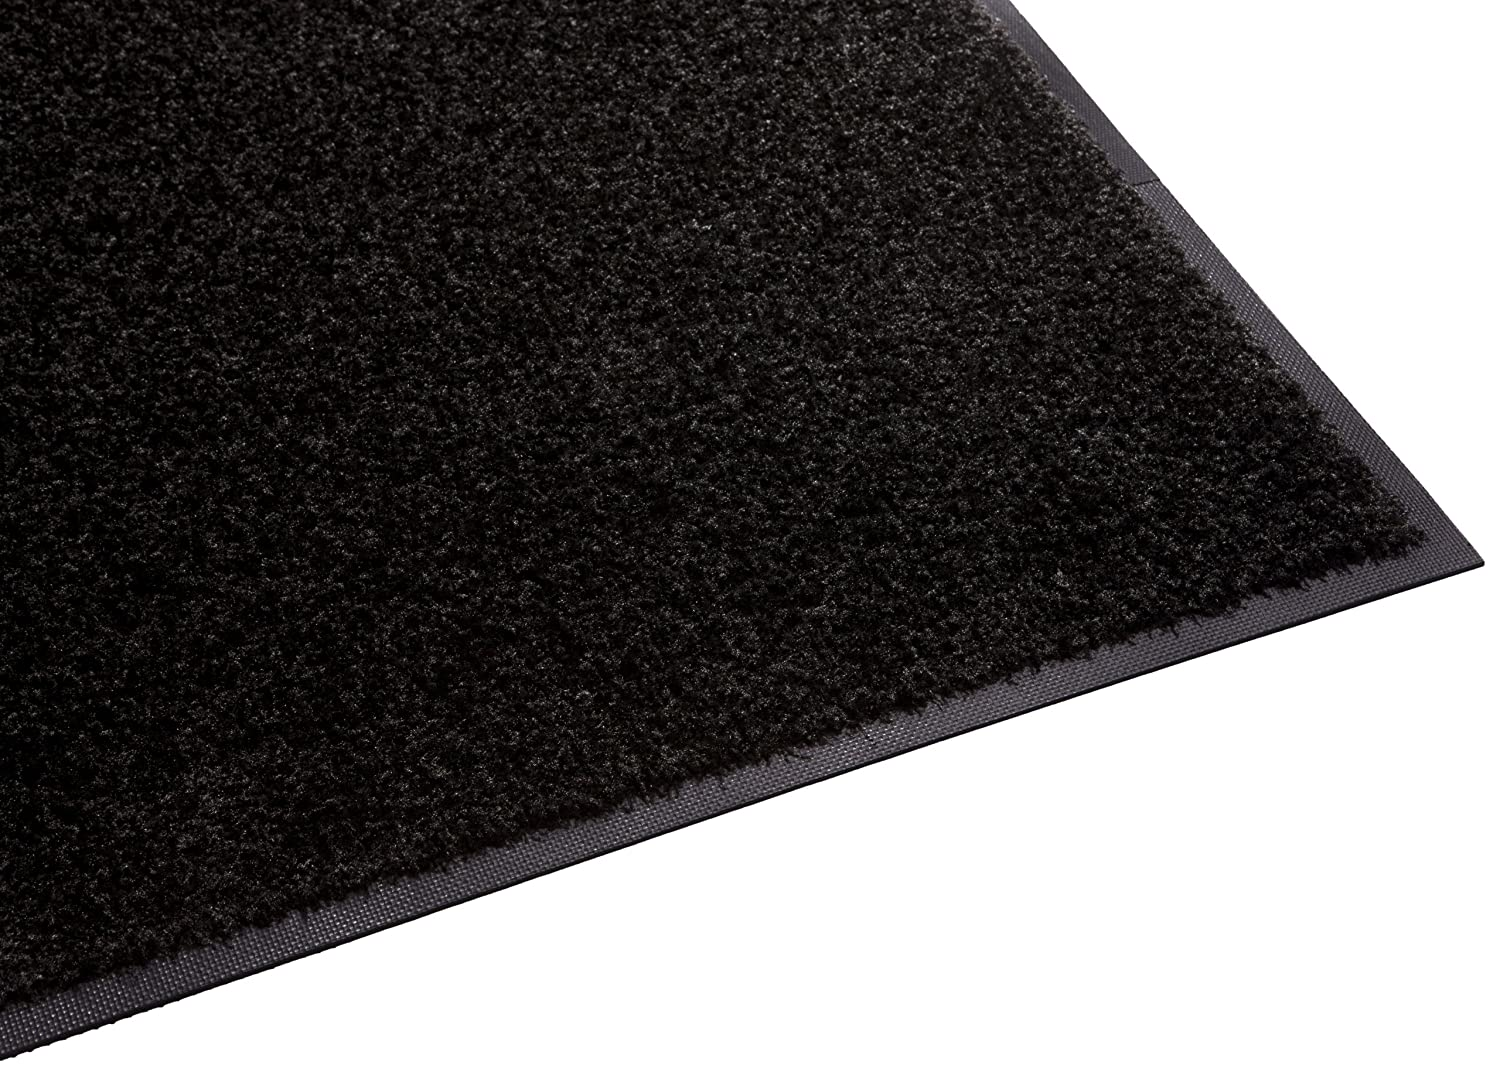 Guardian Platinum Series Indoor Wiper Floor Mat, Rubber with Nylon Carpet, 3'x20', Black